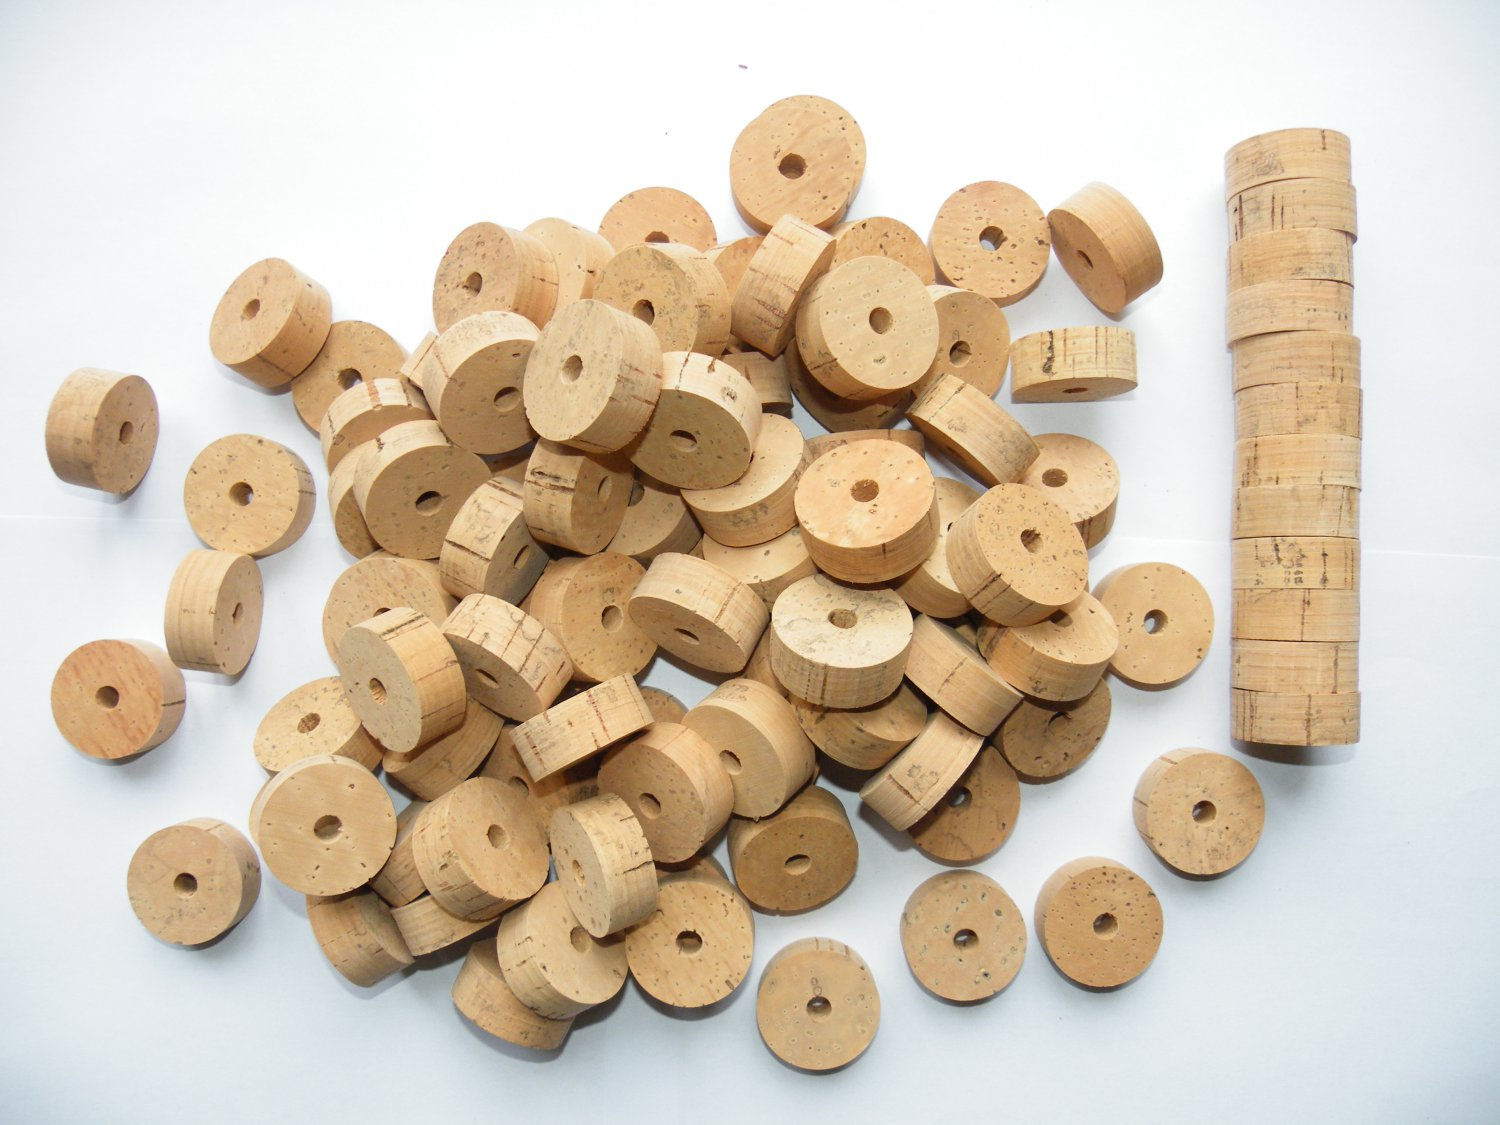 """100 CORK RINGS 11/4""""X1/2"""" BORE 1/4"""" FLOR WITH BLACK SPOTTS - 1.25"""